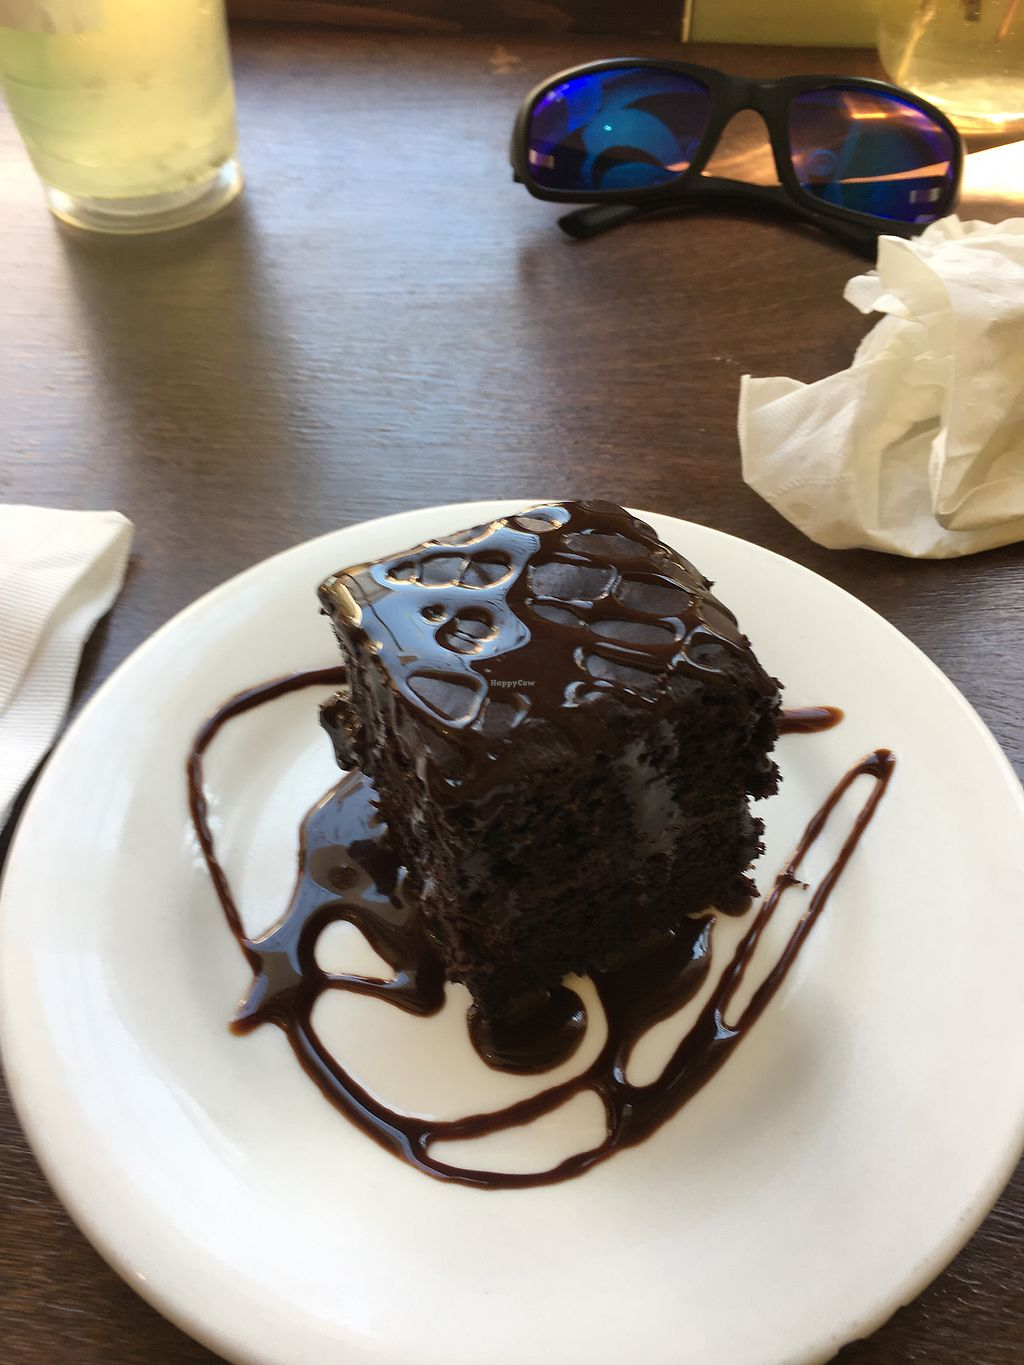 """Photo of Loving Hut  by <a href=""""/members/profile/Rsonnen"""">Rsonnen</a> <br/>chocolate cake  <br/> August 22, 2017  - <a href='/contact/abuse/image/27481/296015'>Report</a>"""